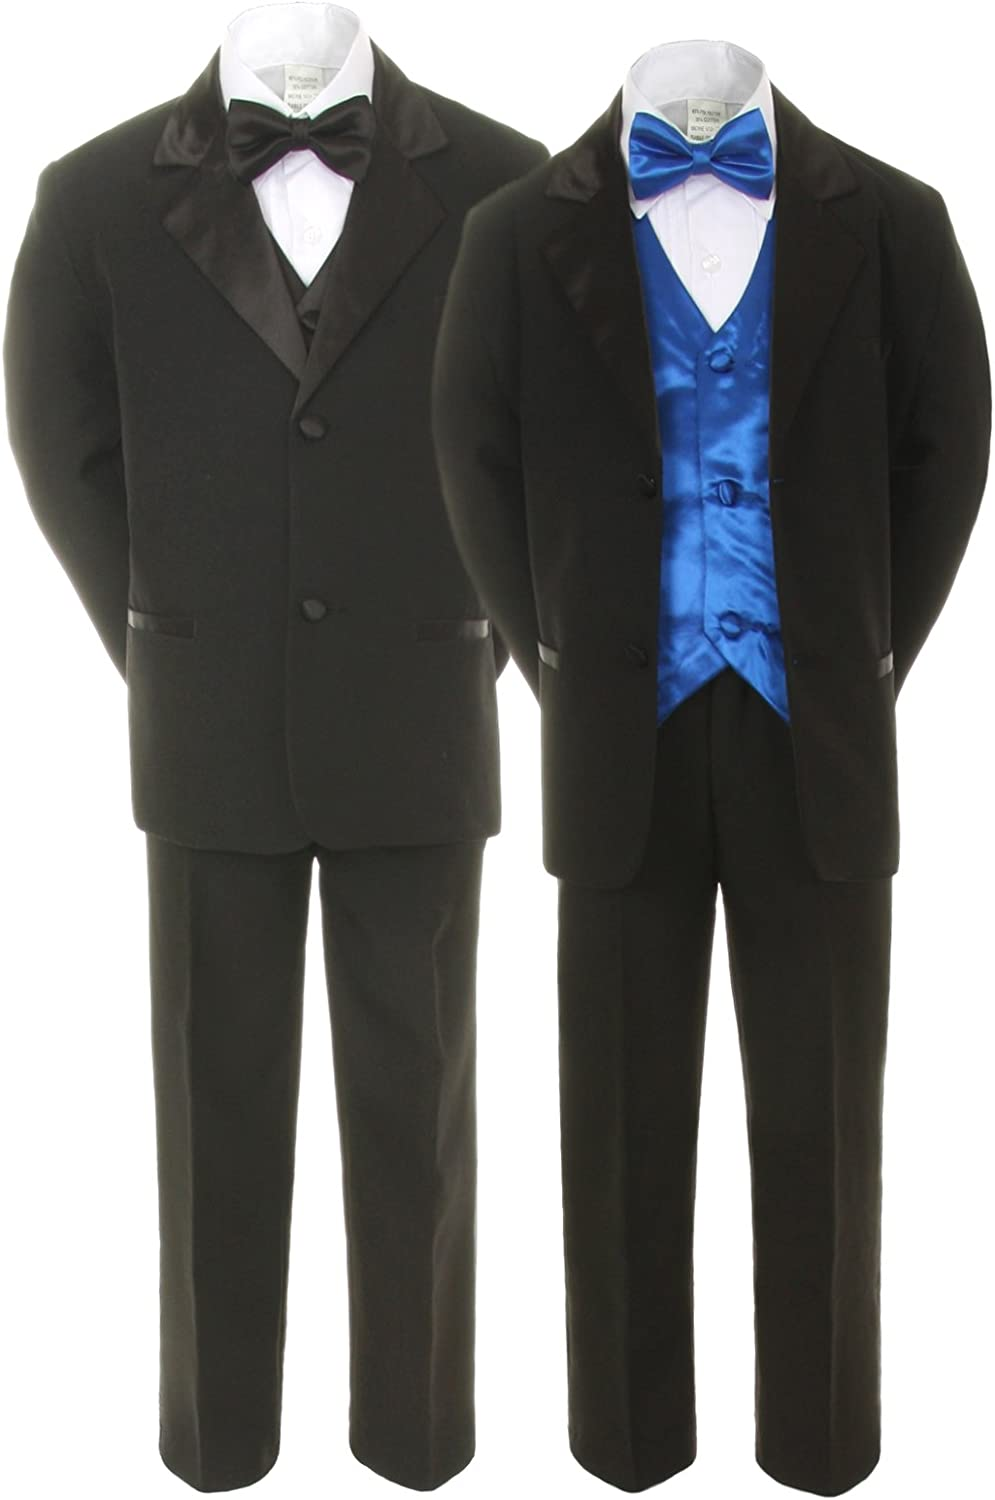 Unotux 7pc Boys Black Suits Tuxedo with Royal Al sold out. Bow Blue Max 55% OFF Satin Tie